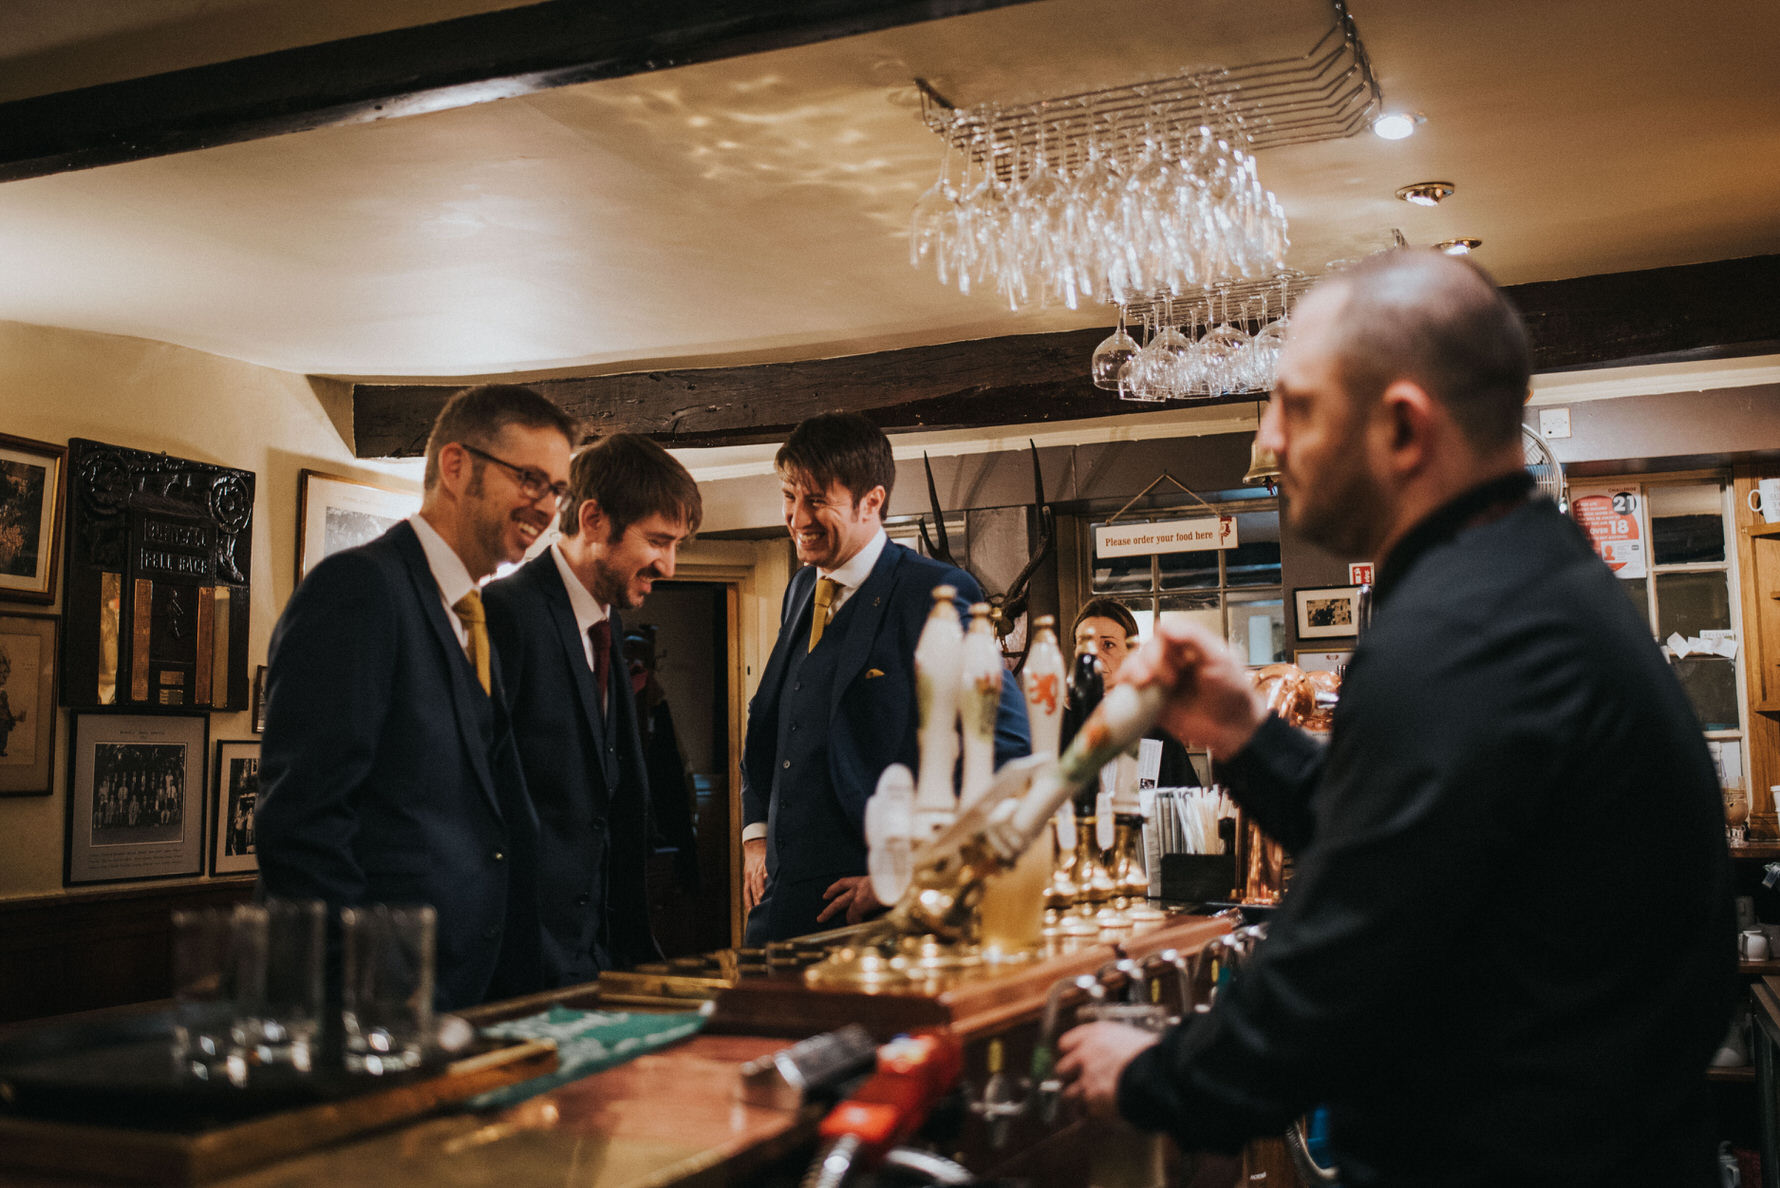 Candid unposed documentary wedding photography by Louise Jacob - Image of groom and groomsmen at the bar